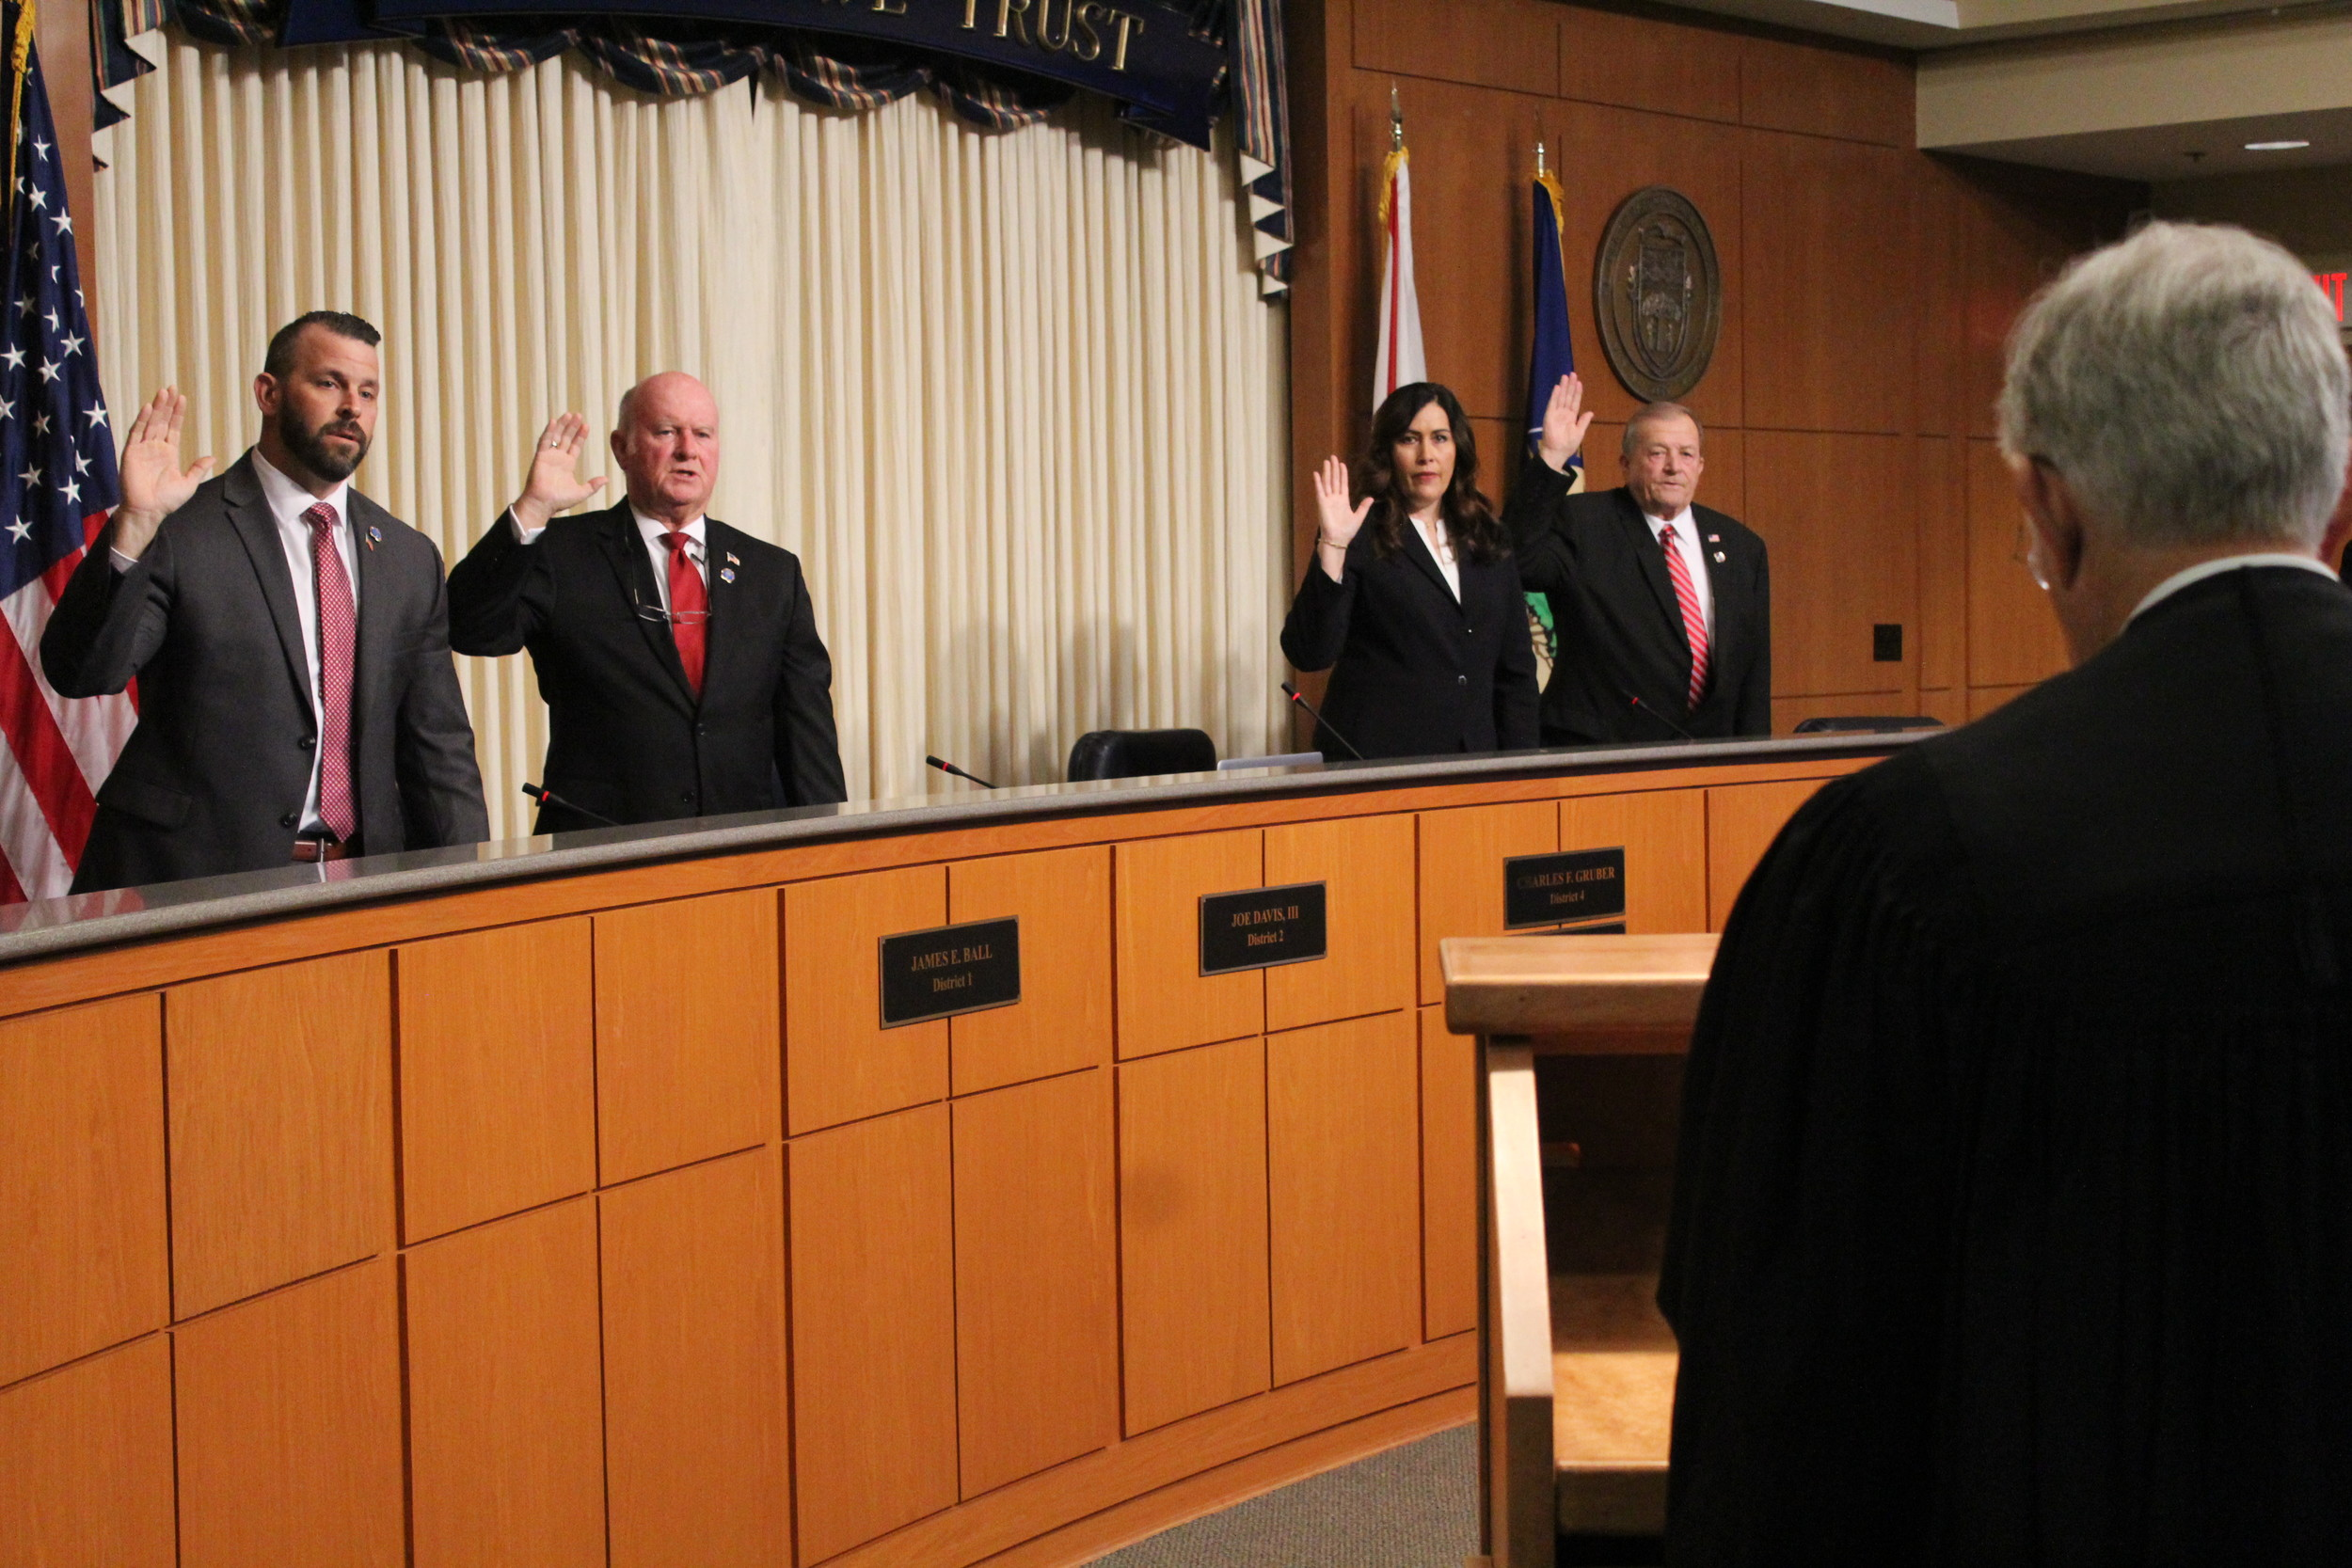 Baldwin County's new county commissioners were sworn in Wednesday morning at a special called meeting in commission chambers in Bay Minette.